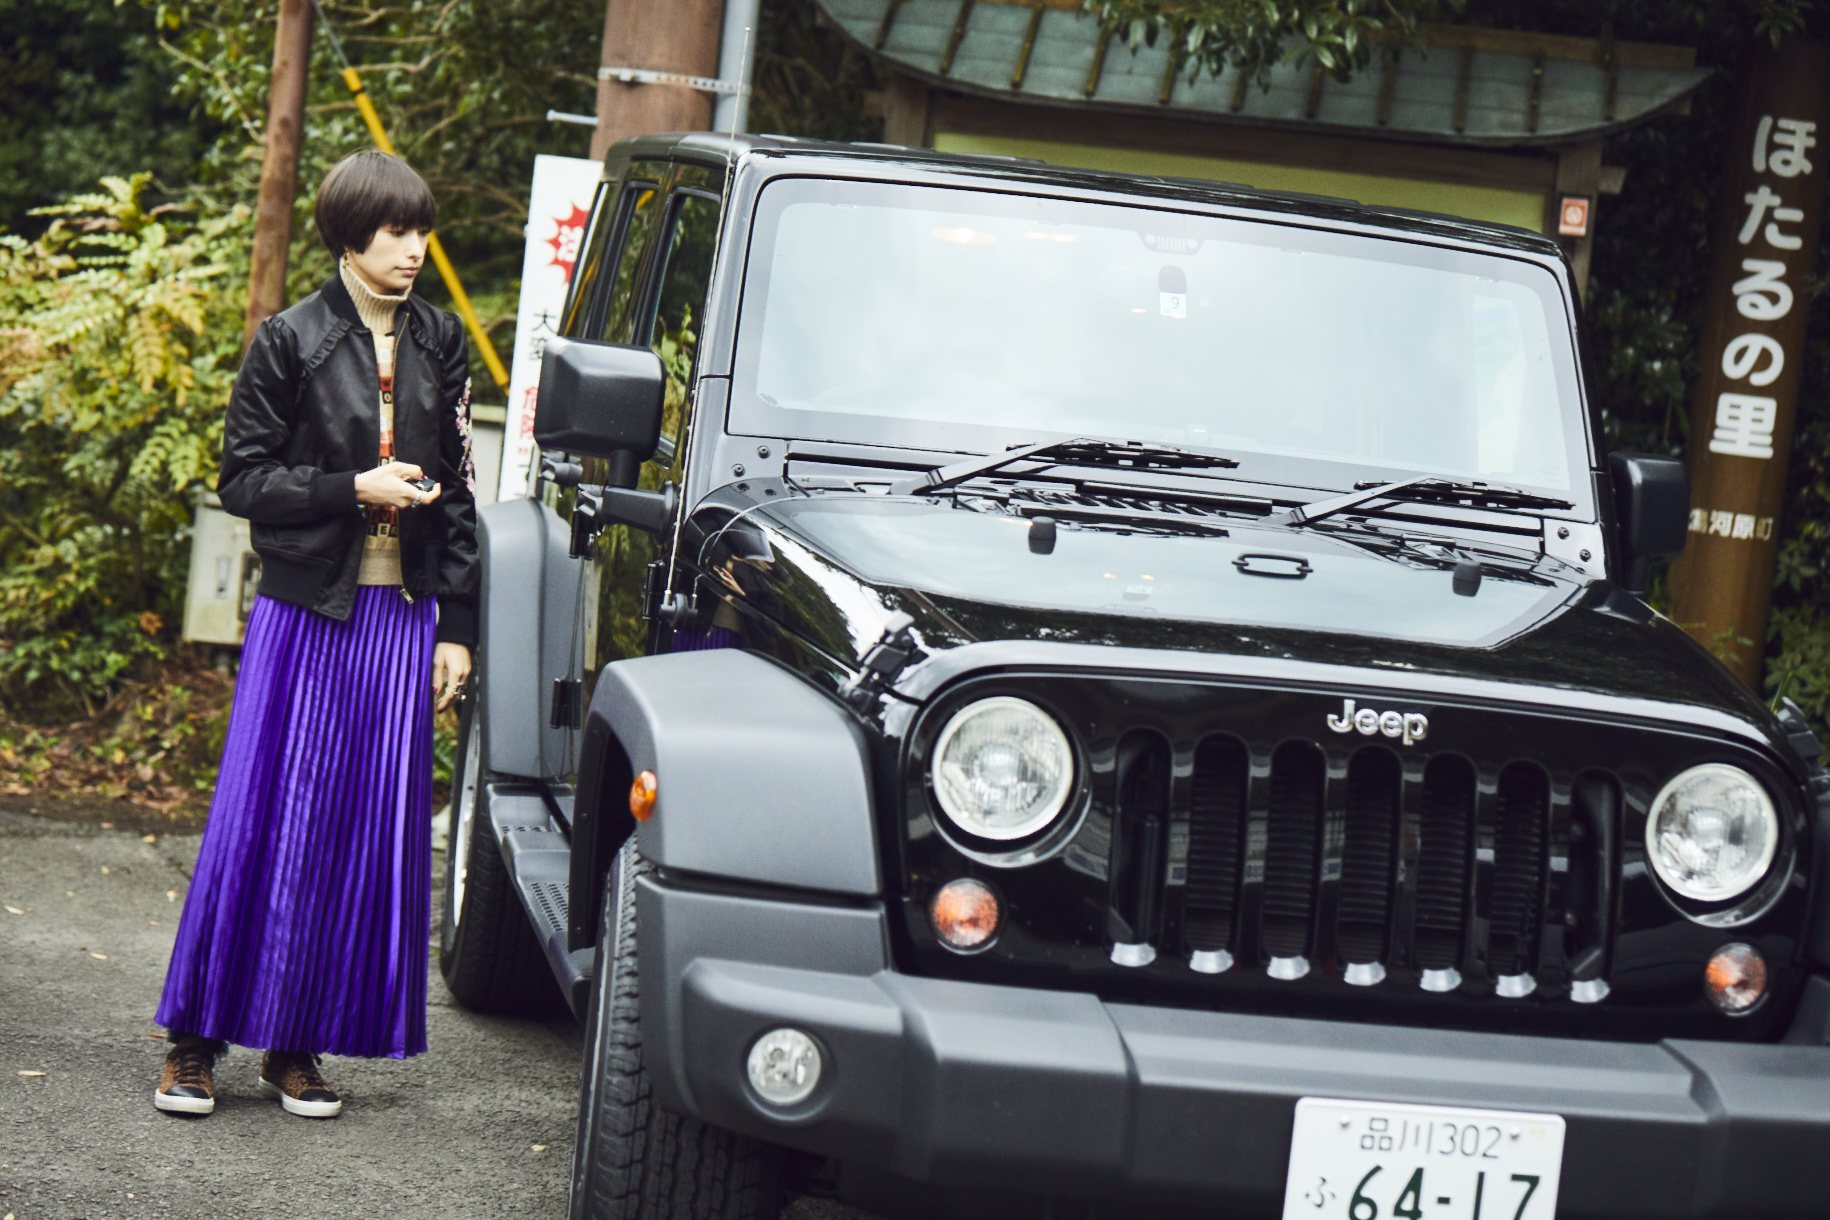 ho_104702 My Jeep®,My Life. ボクとJeep®の暮らしかた。女優・太田莉菜